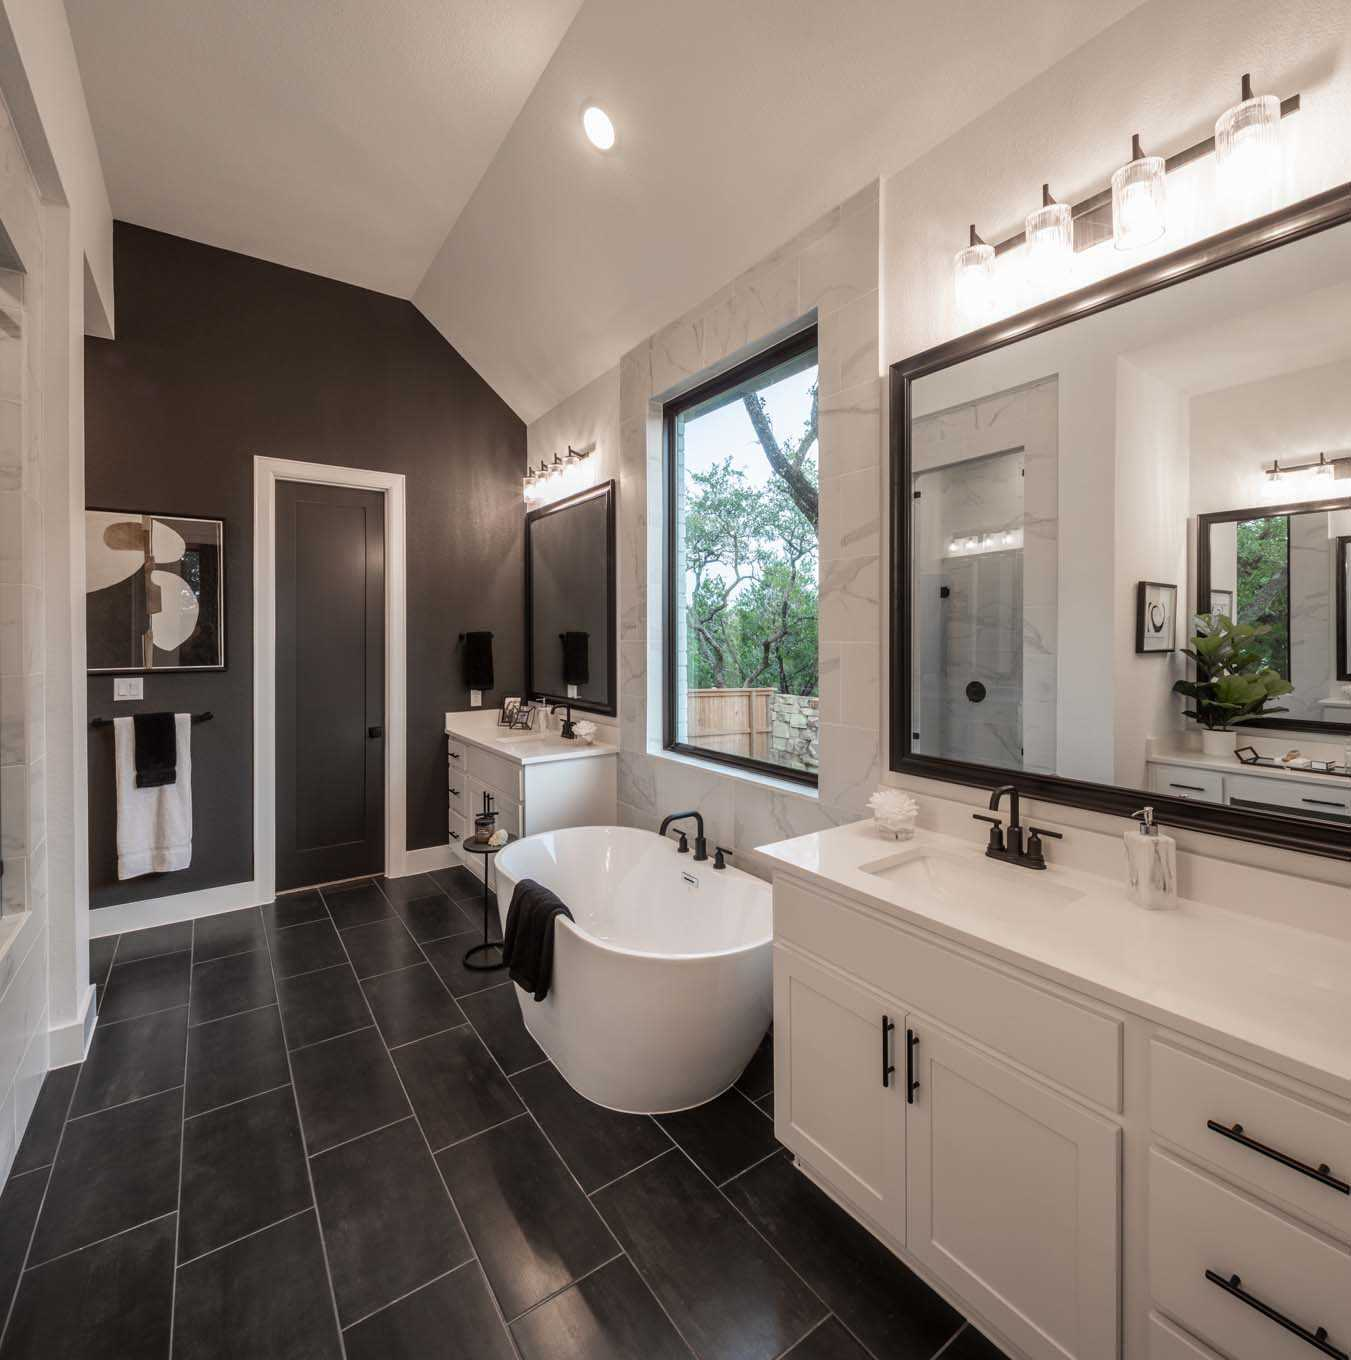 Bathroom featured in the Plan 272 By Highland Homes in Dallas, TX